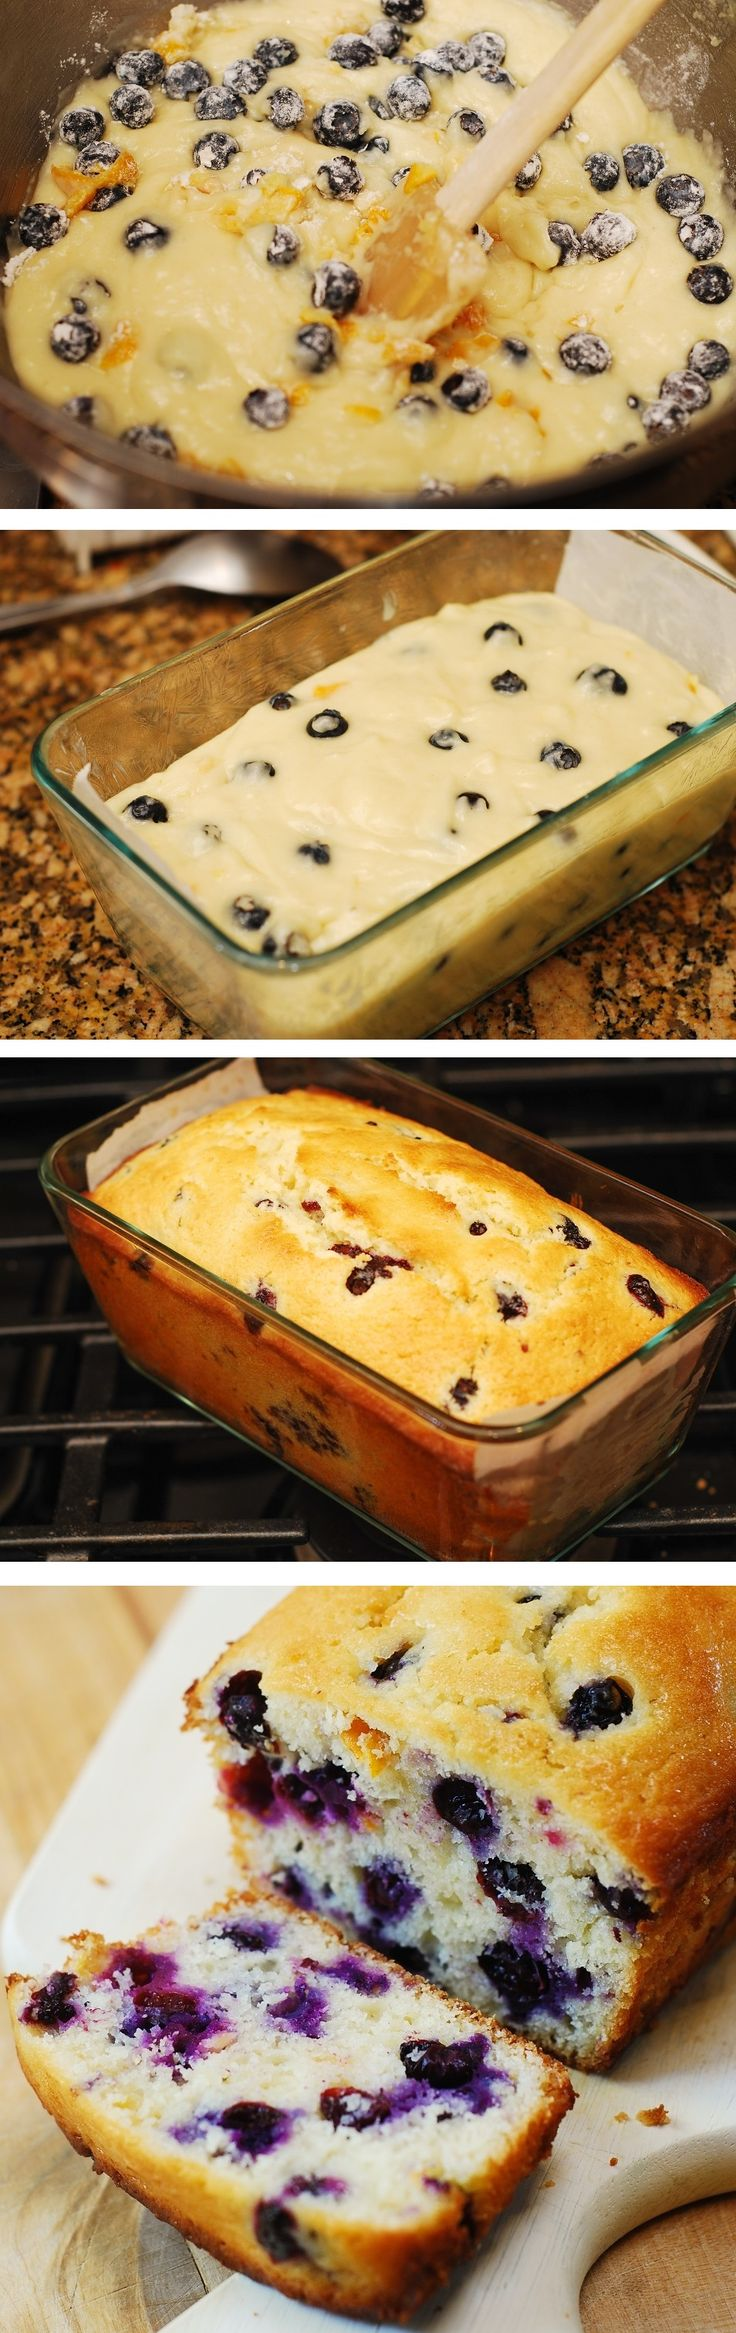 Lemon blueberry bread made with freshly squeezed lemon juice, lemon zest and baked to perfection! JuliasAlbum.com #berry_desserts #breakfast_ideas